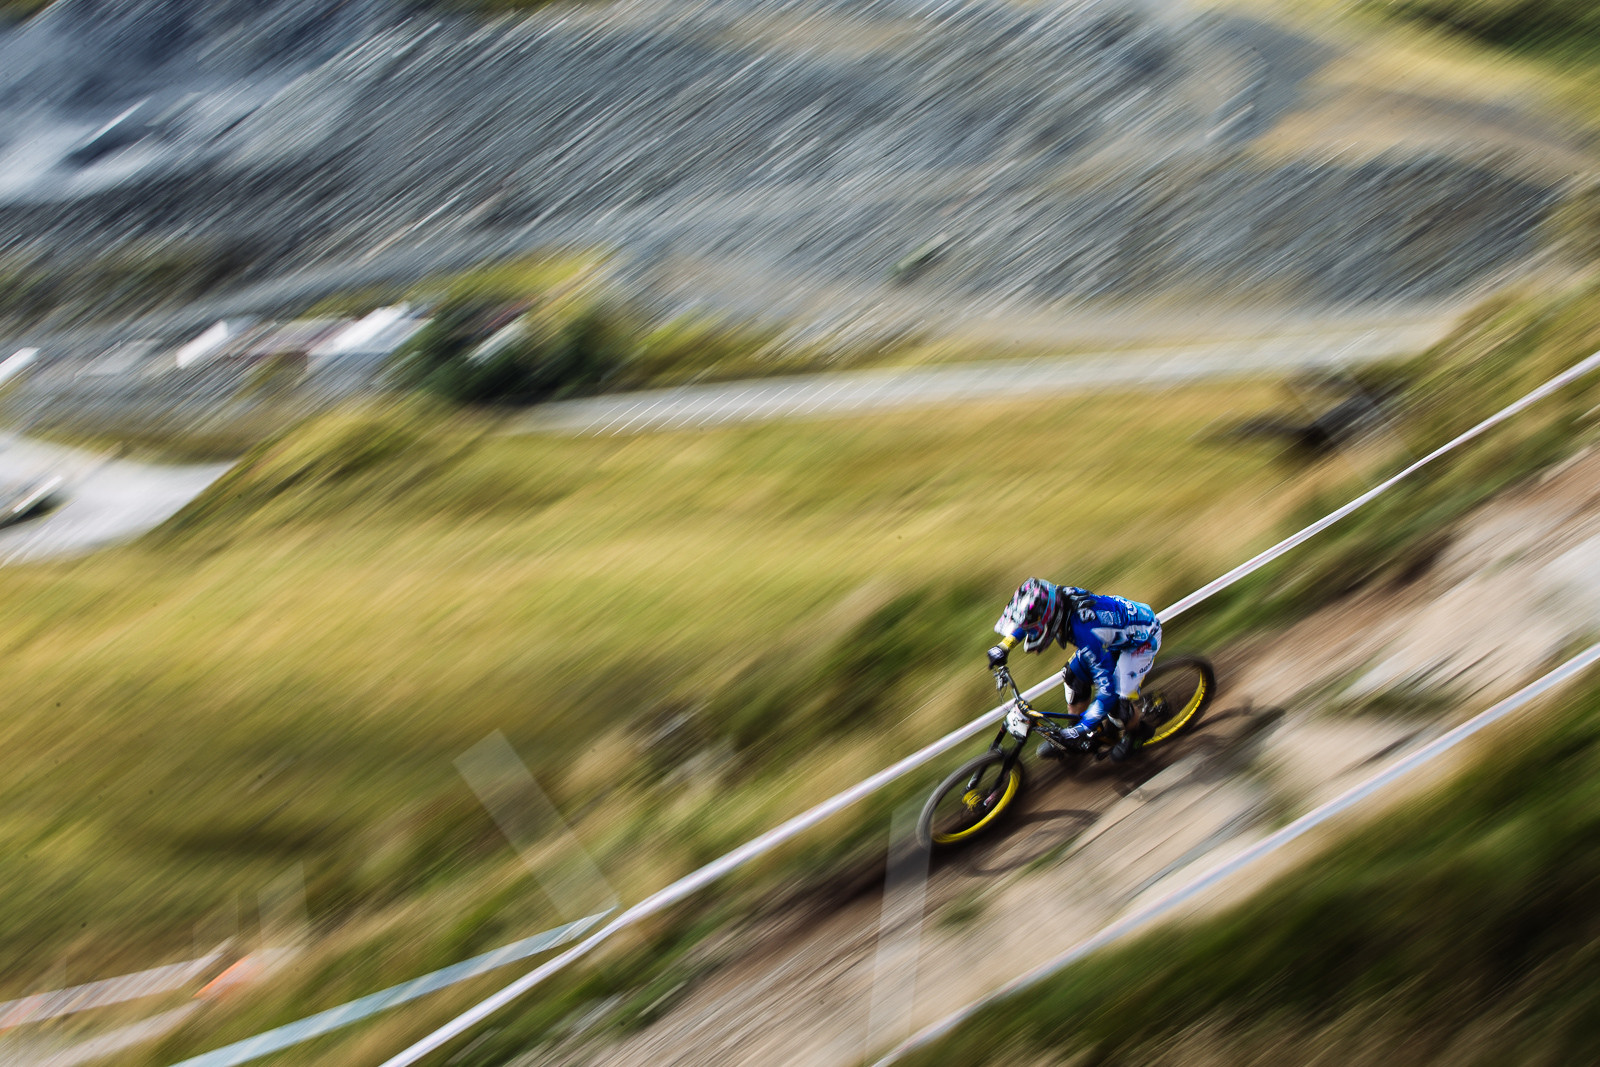 Joe Smith, 2015 British Downhill Series Winner - 2015 British Downhill Series Finals - Mountain Biking Pictures - Vital MTB